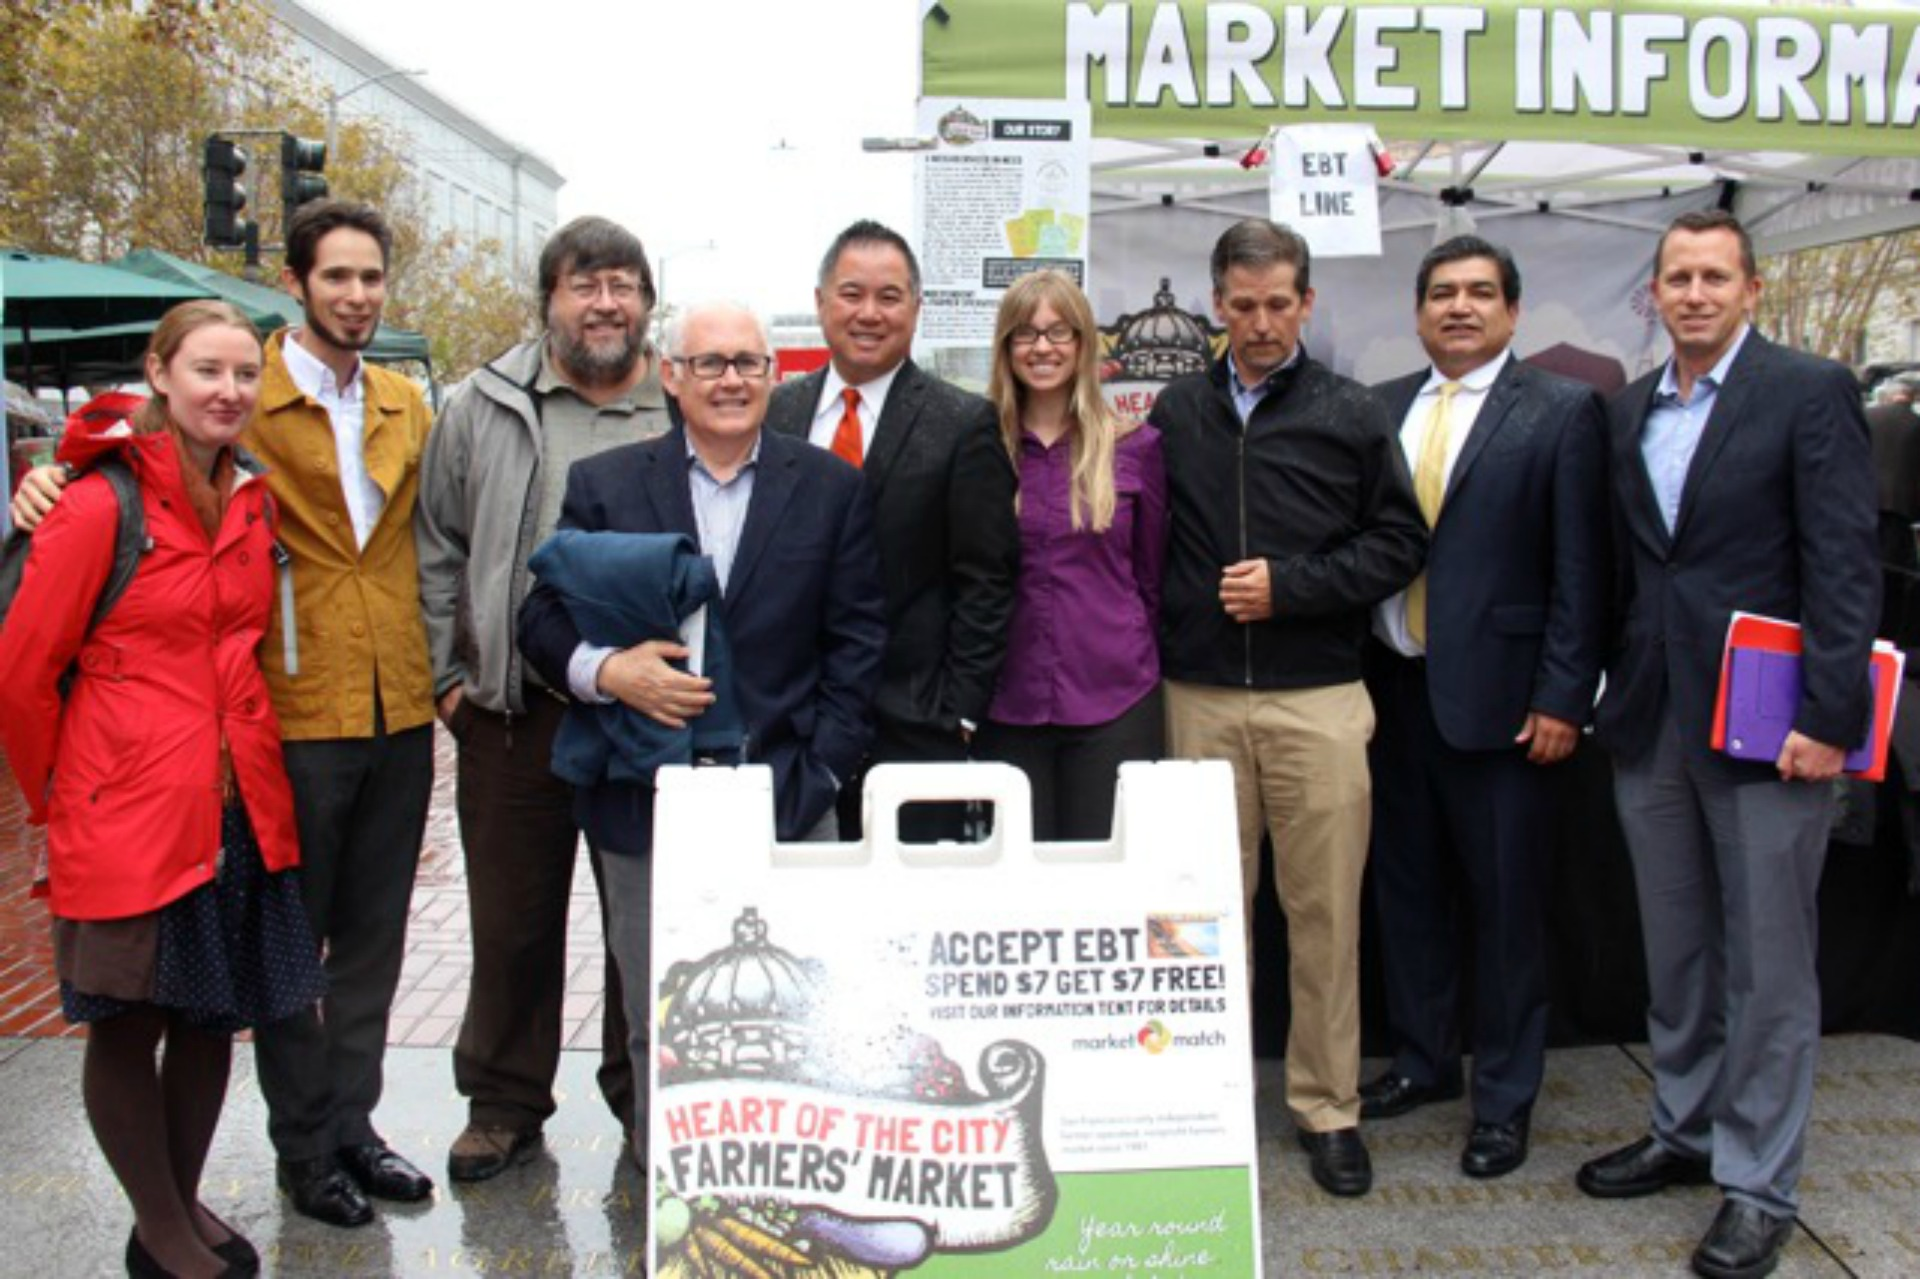 Celebrating the passage of nutrition incentive matching legislation AB 1321 at Heart of the City Farmers Market in September. From left: Christina Oatfield, Eli Zigas, Peter Ruddock, Michael Dimock, Assemblymember Phil Ting, Kate Creps, Martin Bourque, Xavier Morales, Allen Moy.